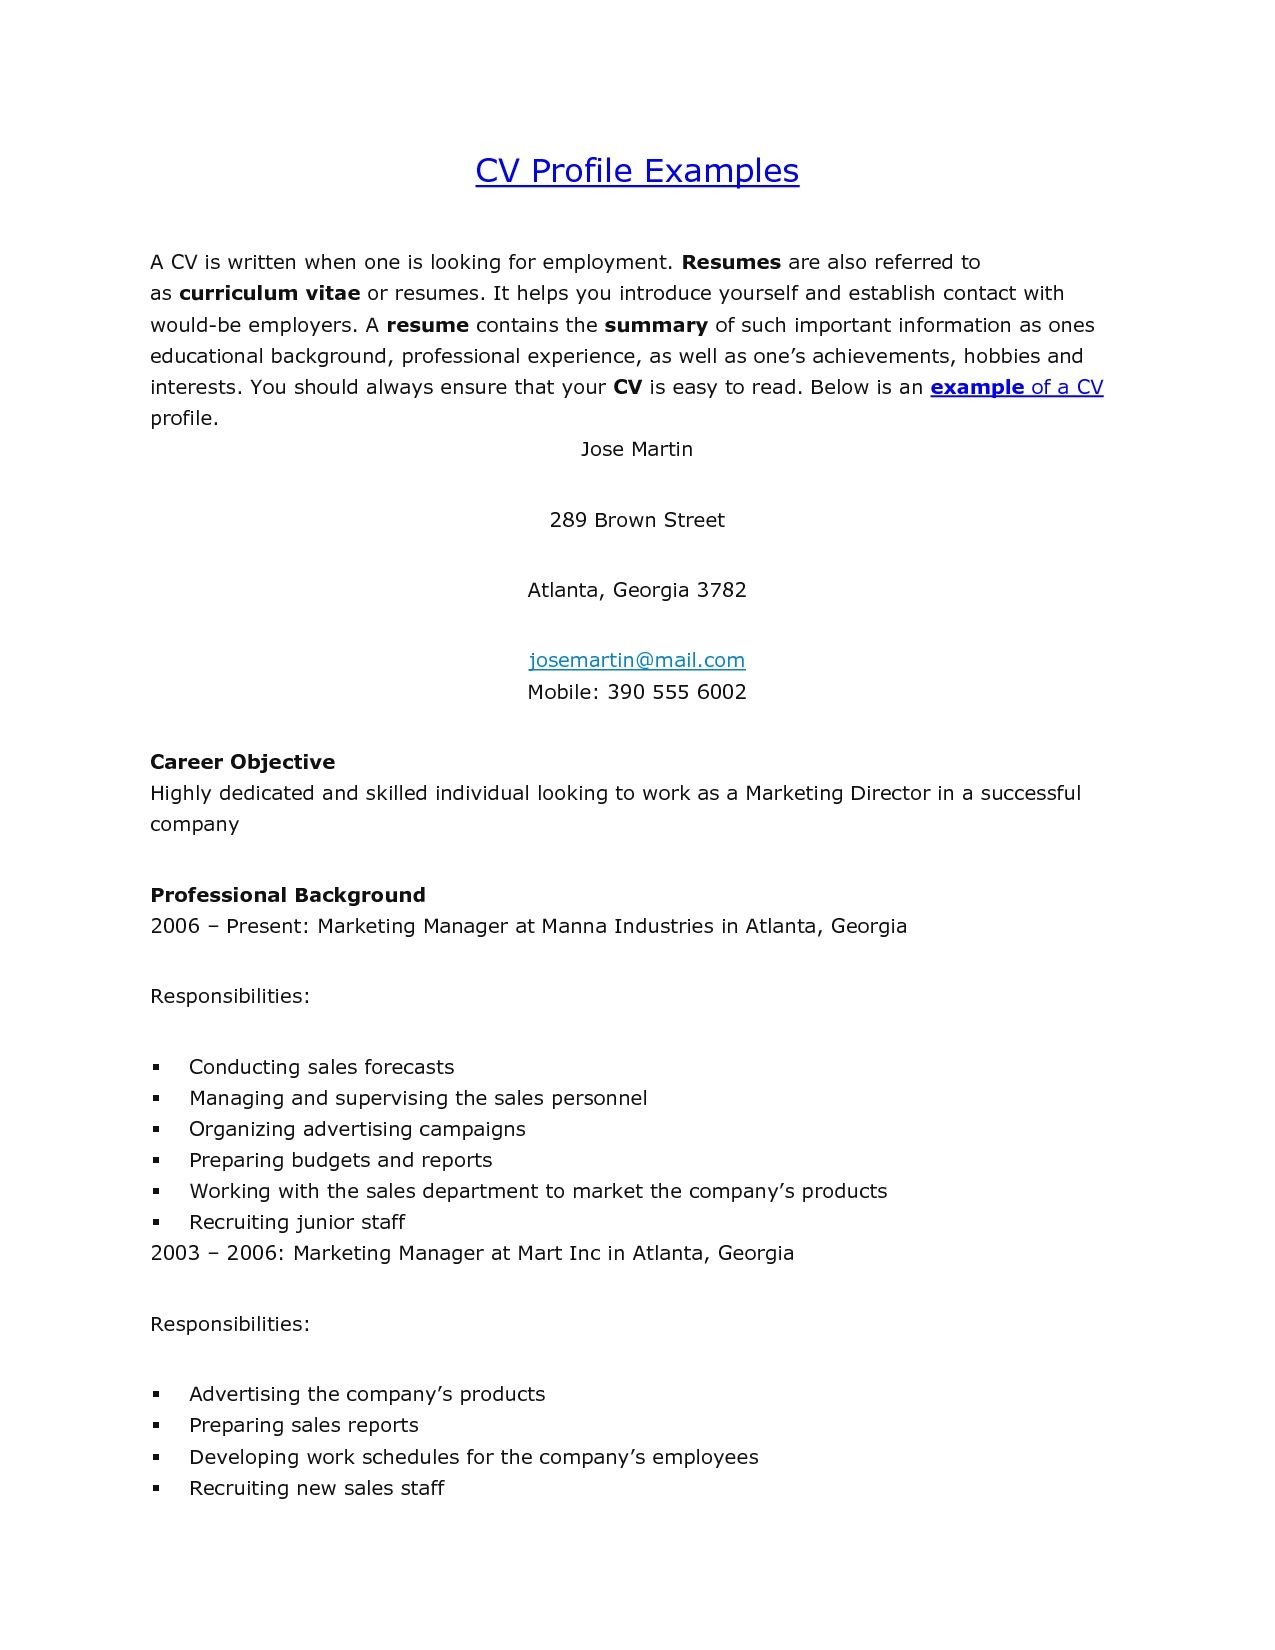 Delightful Resume Professional Profile Examples Sample Experience Chartered Accountant  With Great Career  Professional Profile Examples